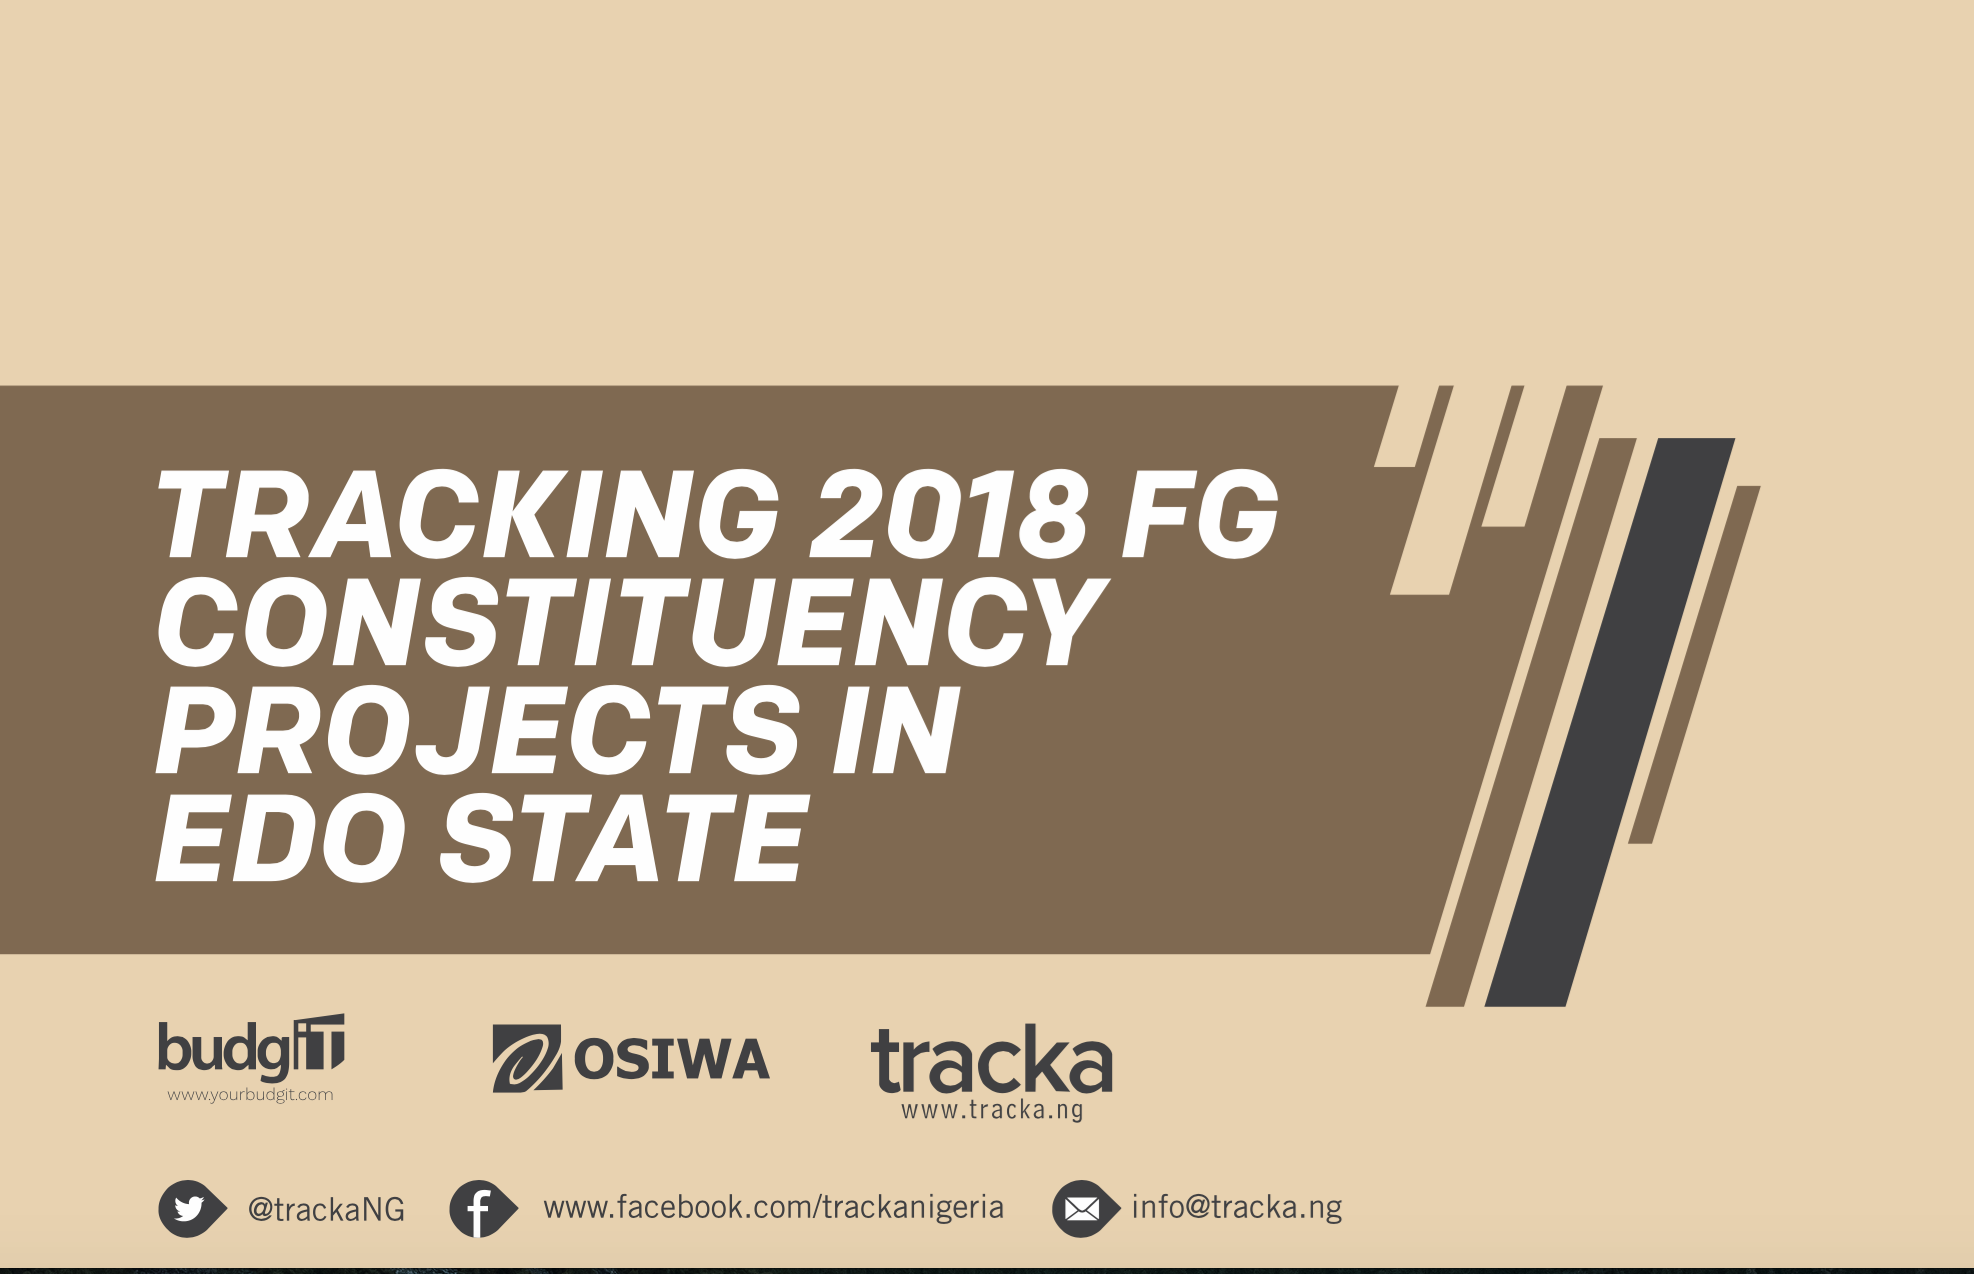 2018 FG Constituency projects in Edo State